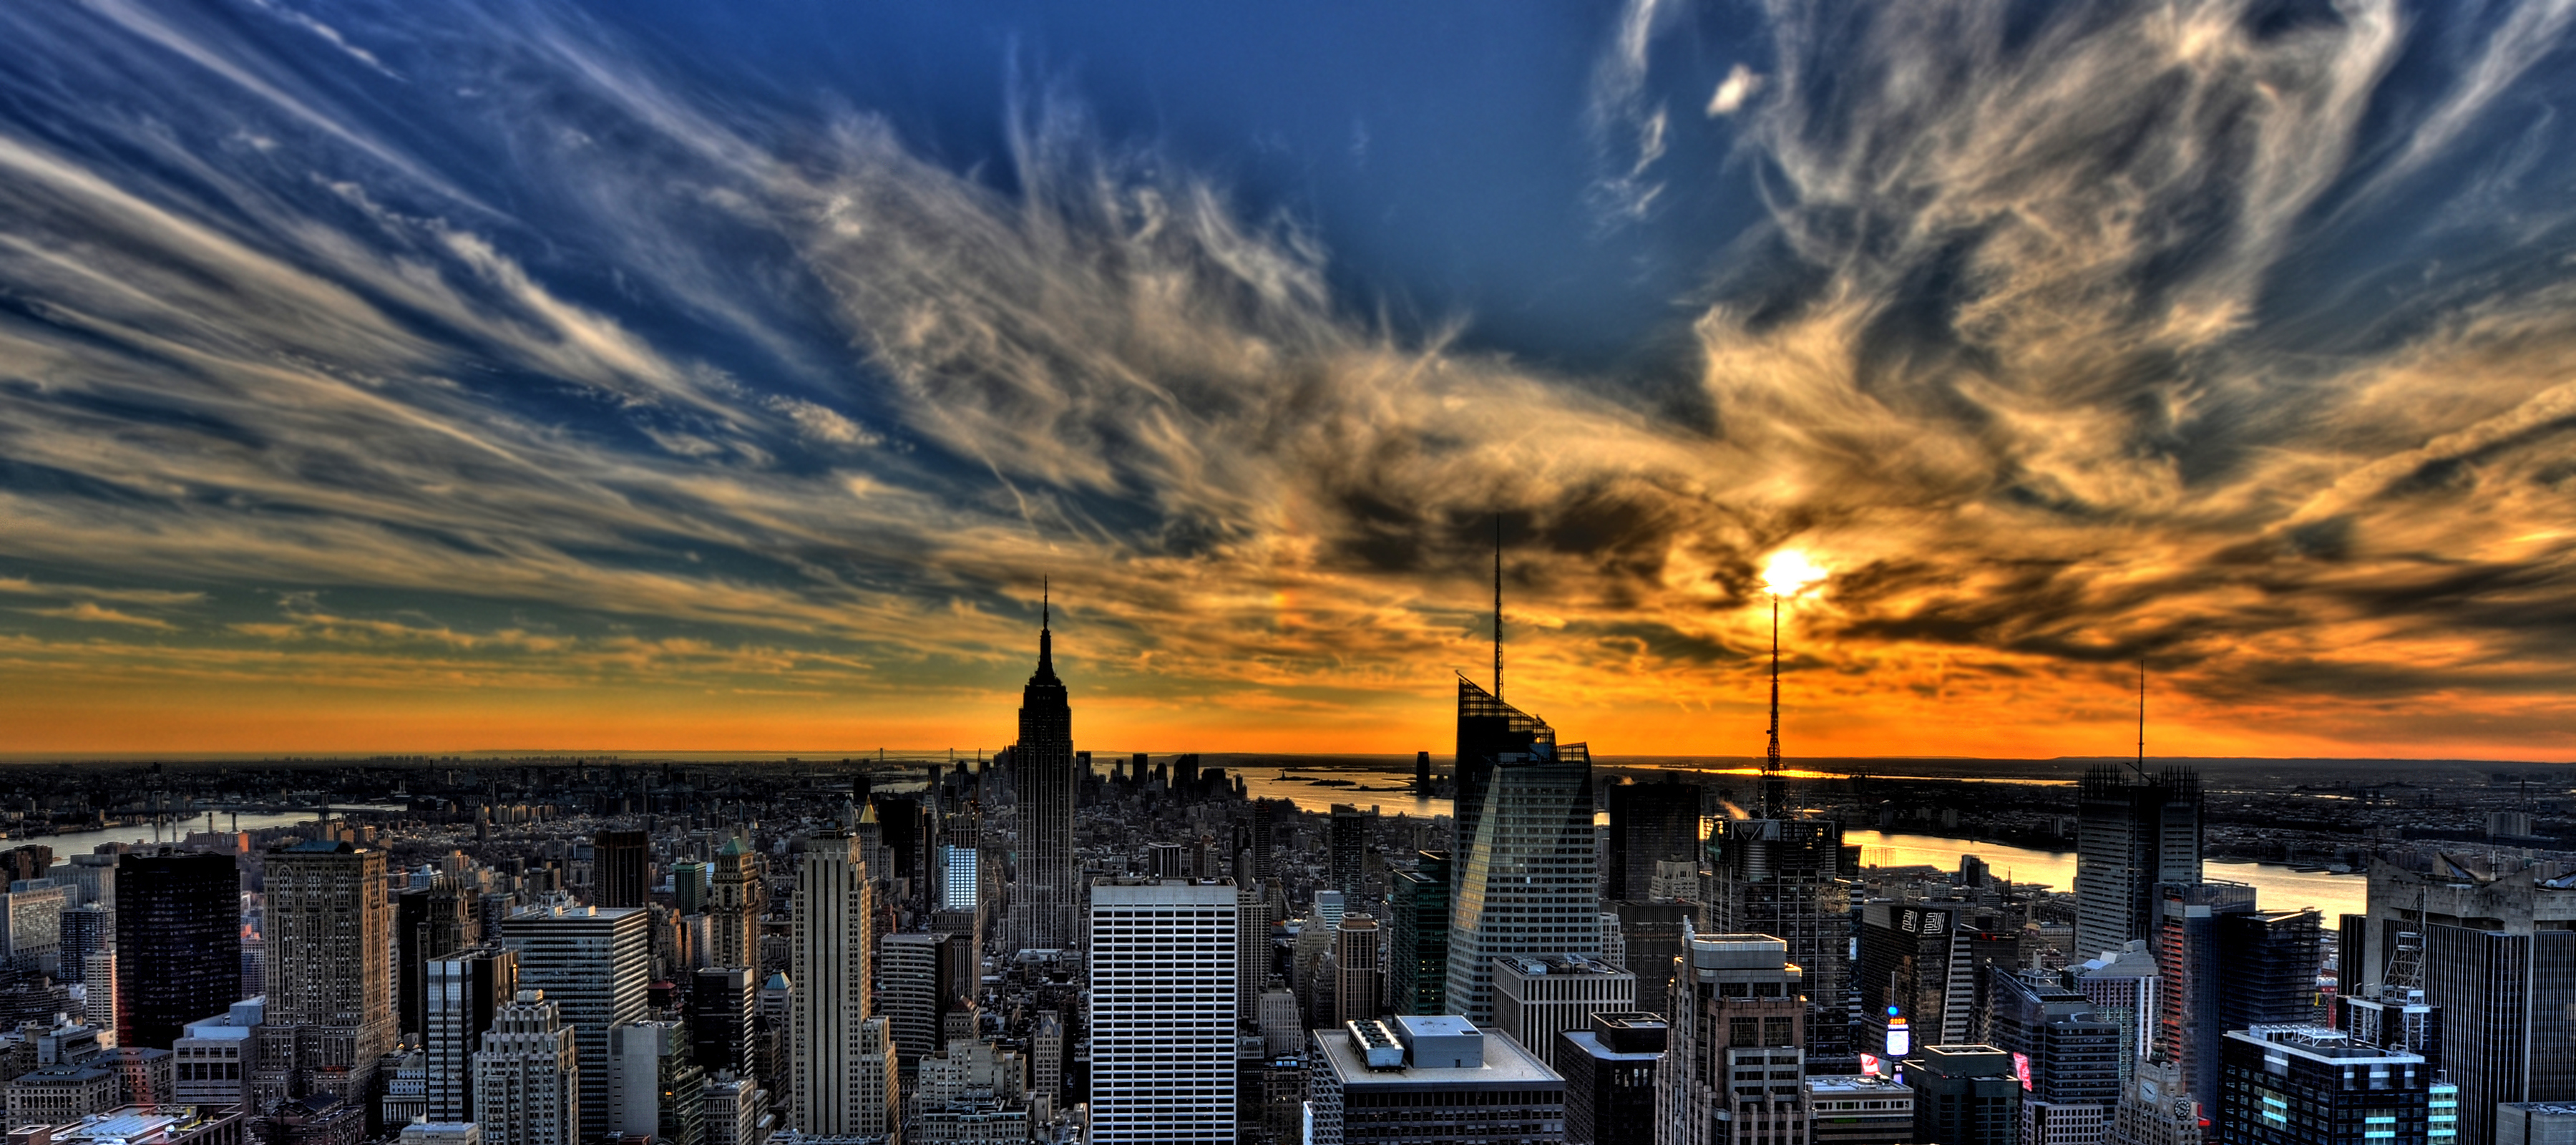 widescreen-wallpaper-widescreen-wallpaper-widescreen-wallpapers-city-new-york-wallpaper-united